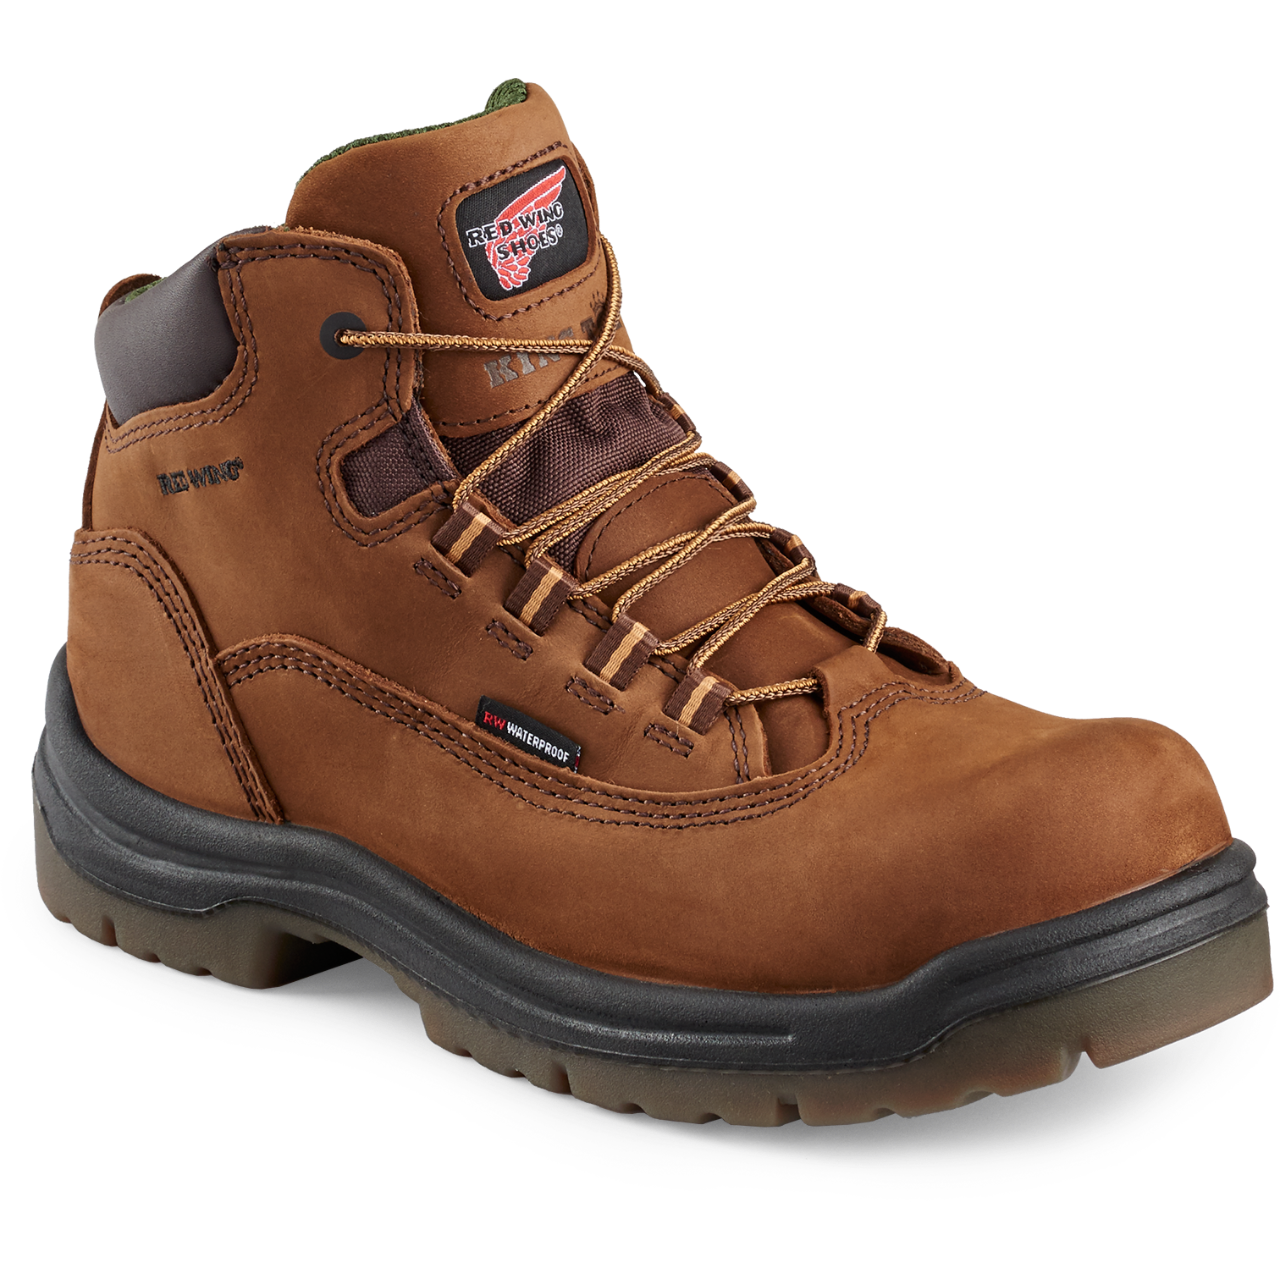 Red Wing 2340 - Women's 5-Inch Boot Brown  Composite Toe - Waterproof - Electrical Hazard King Toe - Core Style  Click here for specifications